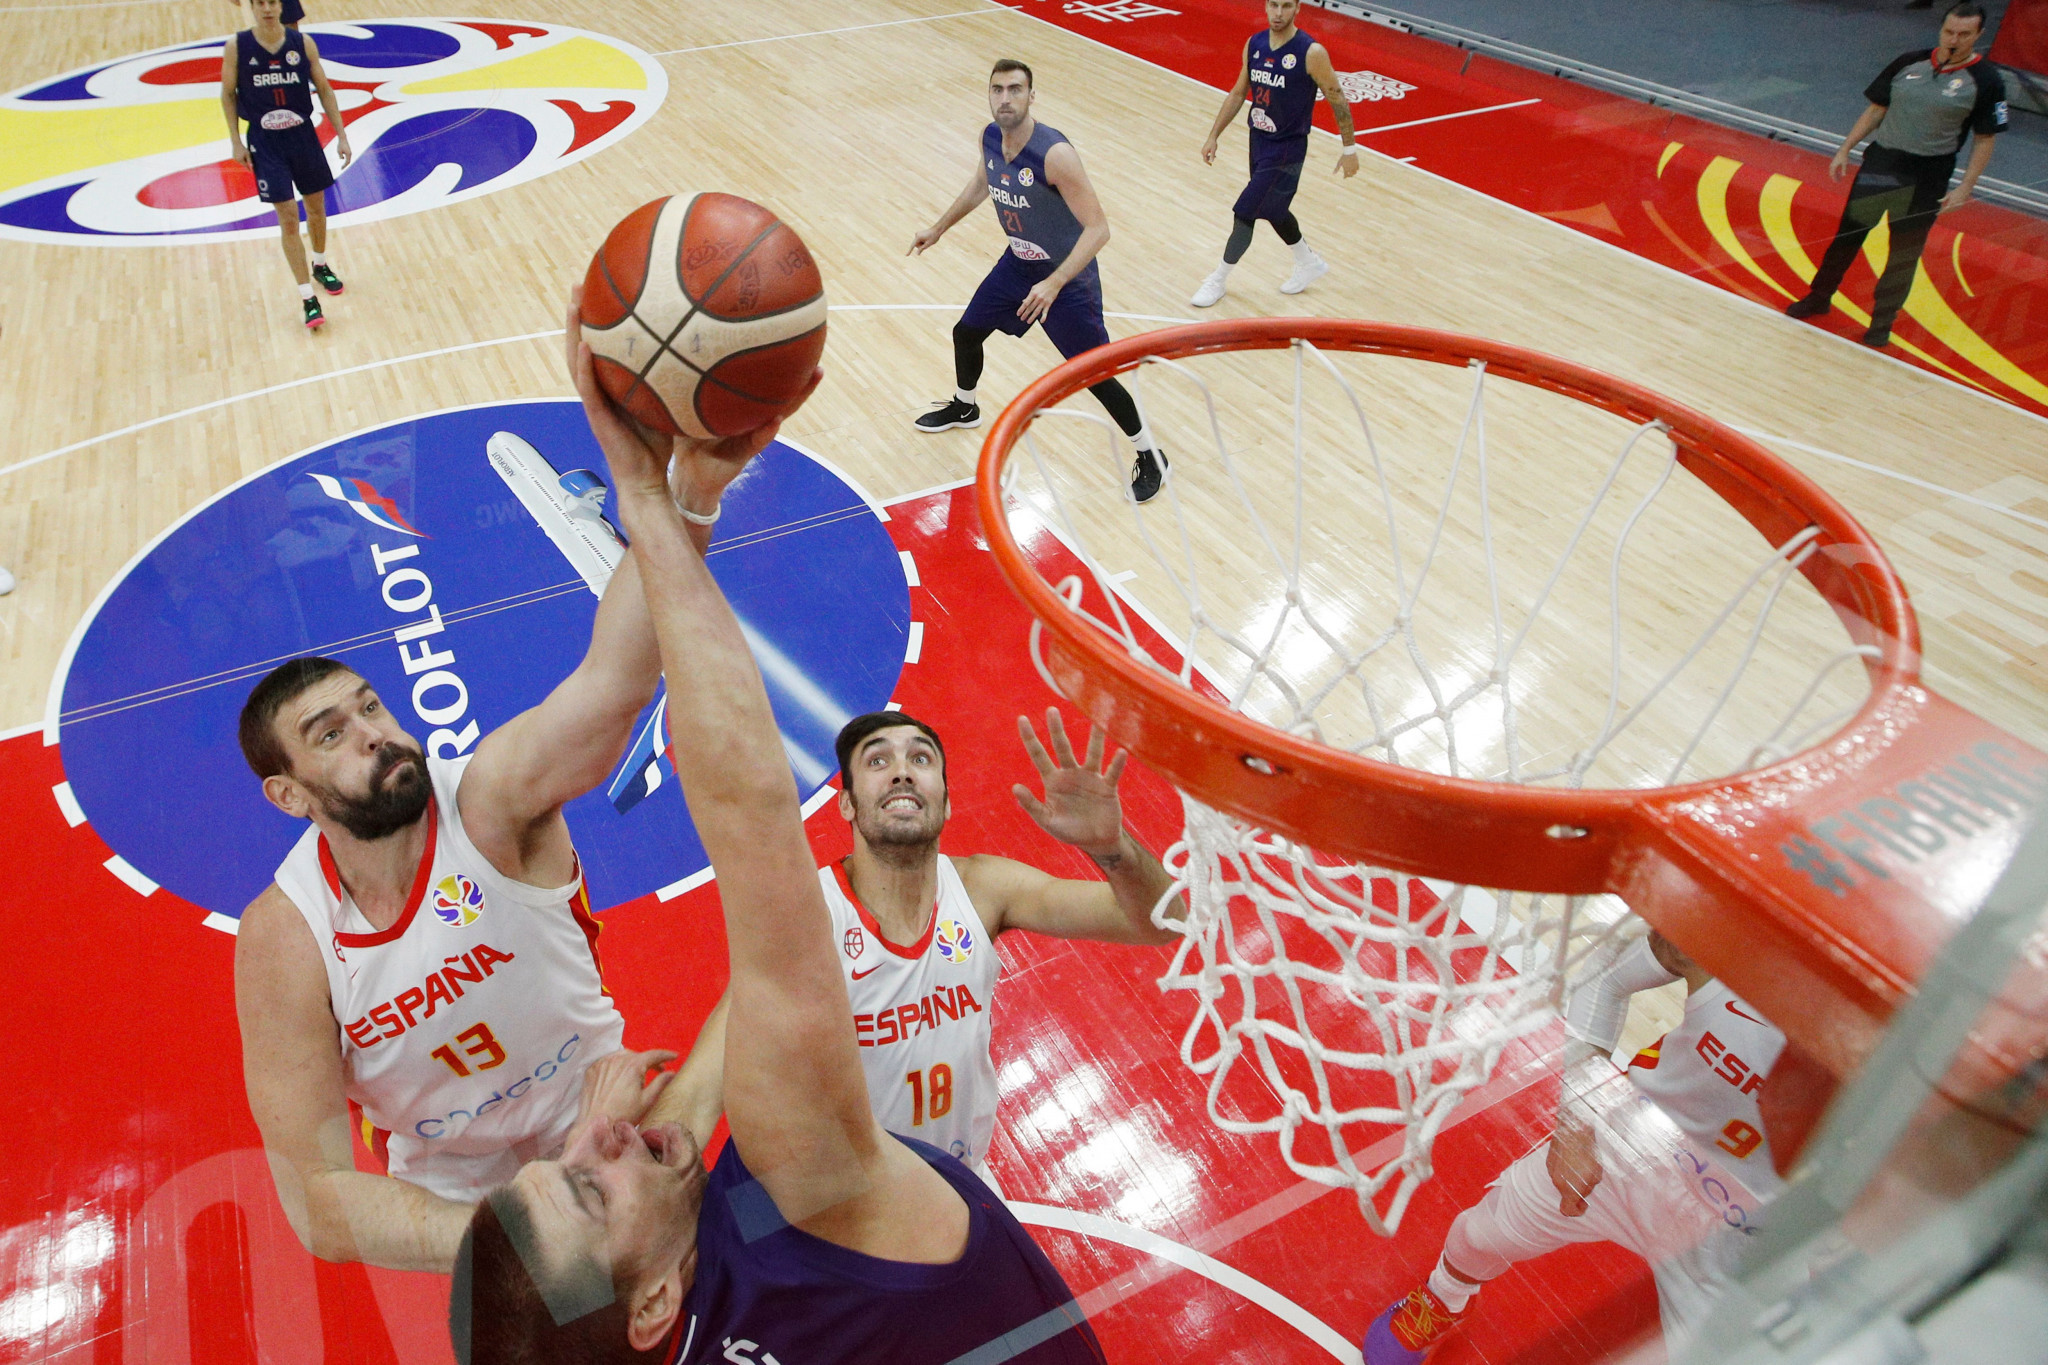 Spain earned an important win over Serbia at the FIBA World Cup in China ©Getty Images